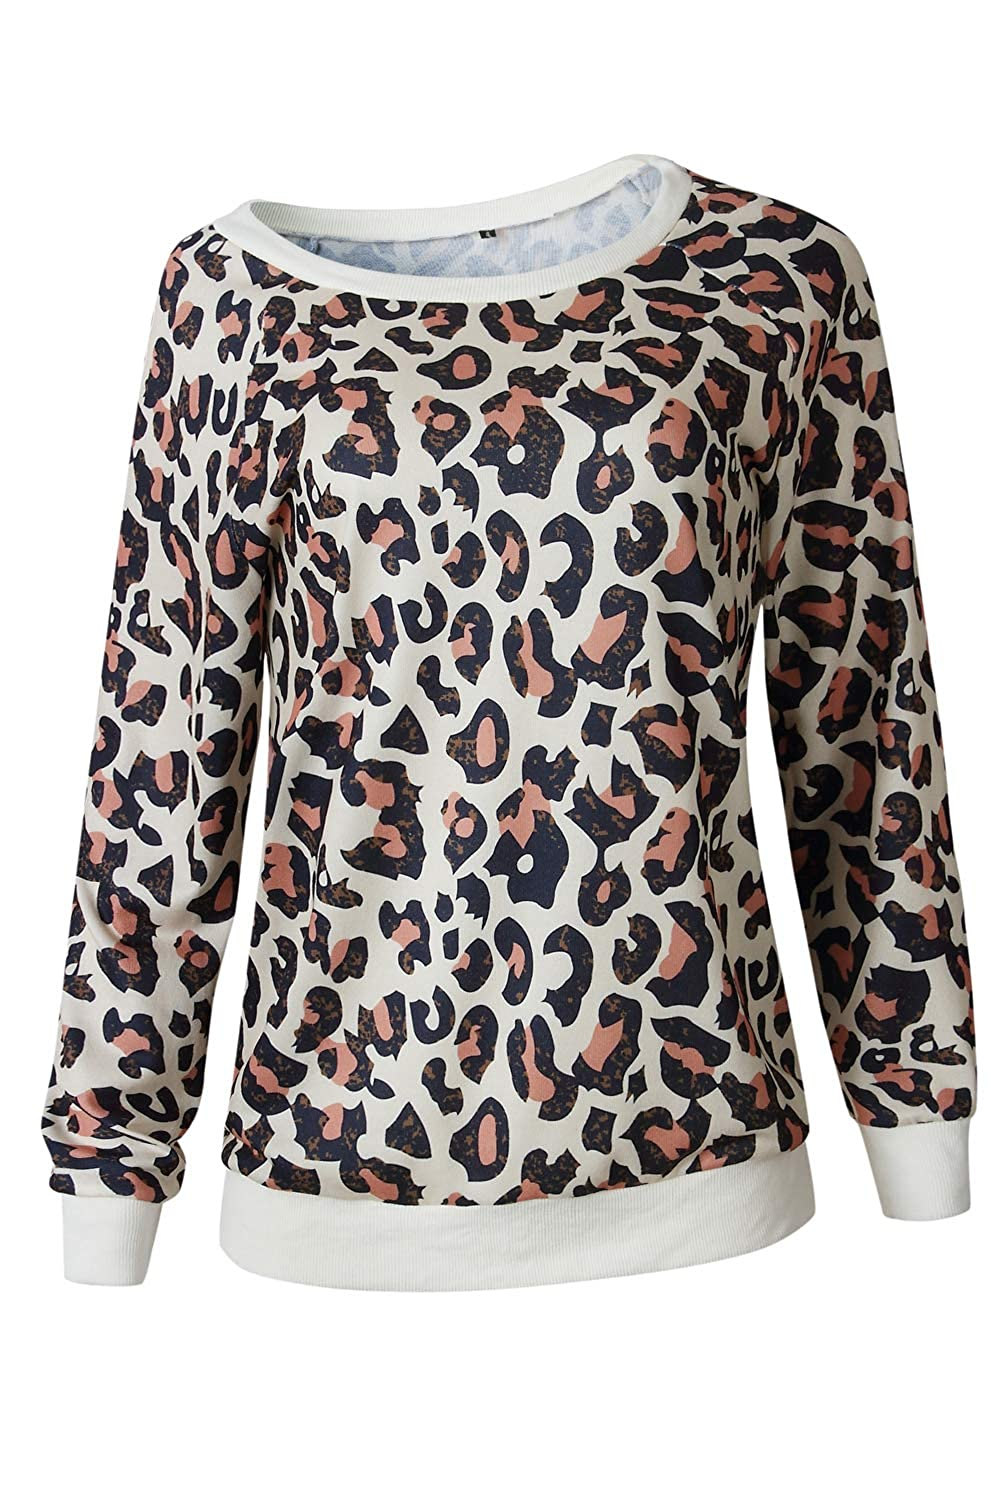 Women Pullover Sweatshirt Leopard Print Long Sleeve Sweater Tops at Amazon Womens Clothing store: